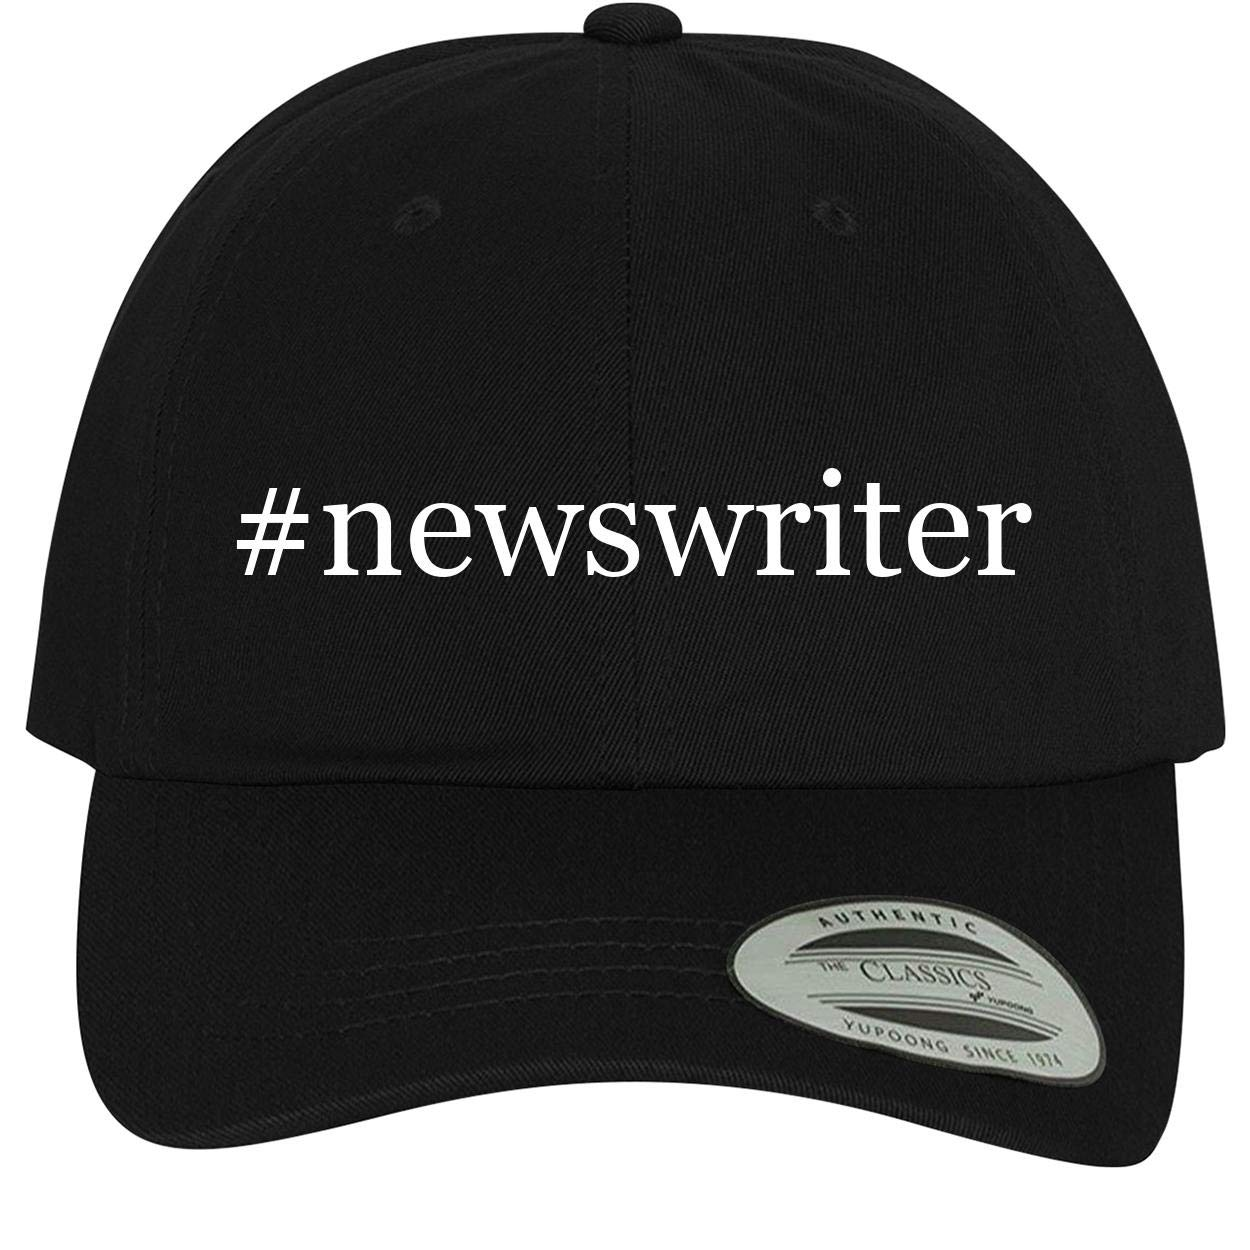 BH Cool Designs #Newswriter Comfortable Dad Hat Baseball Cap